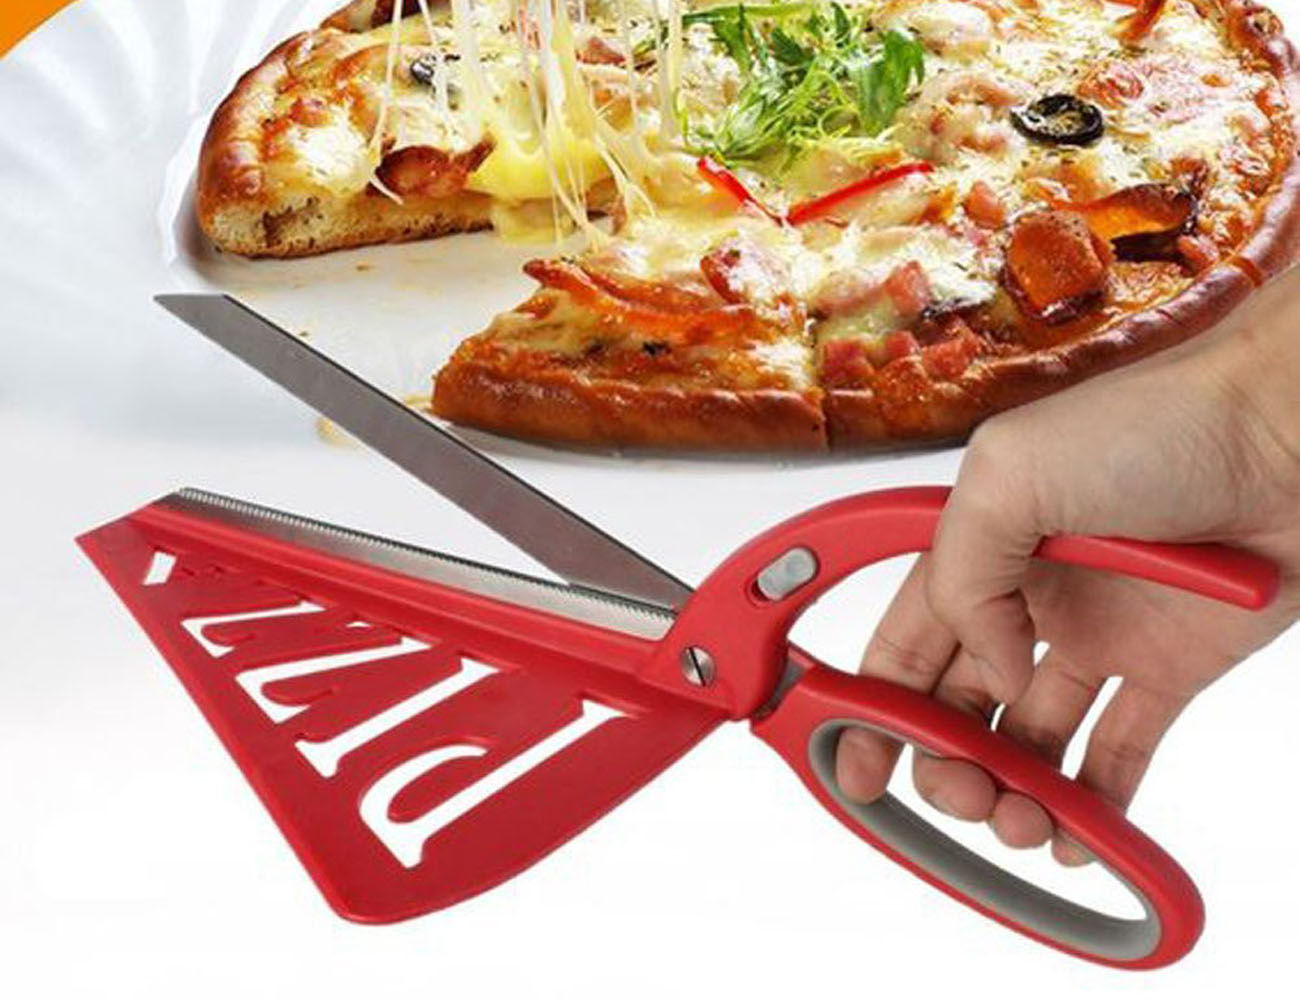 Pizza Scissors by Sagaform